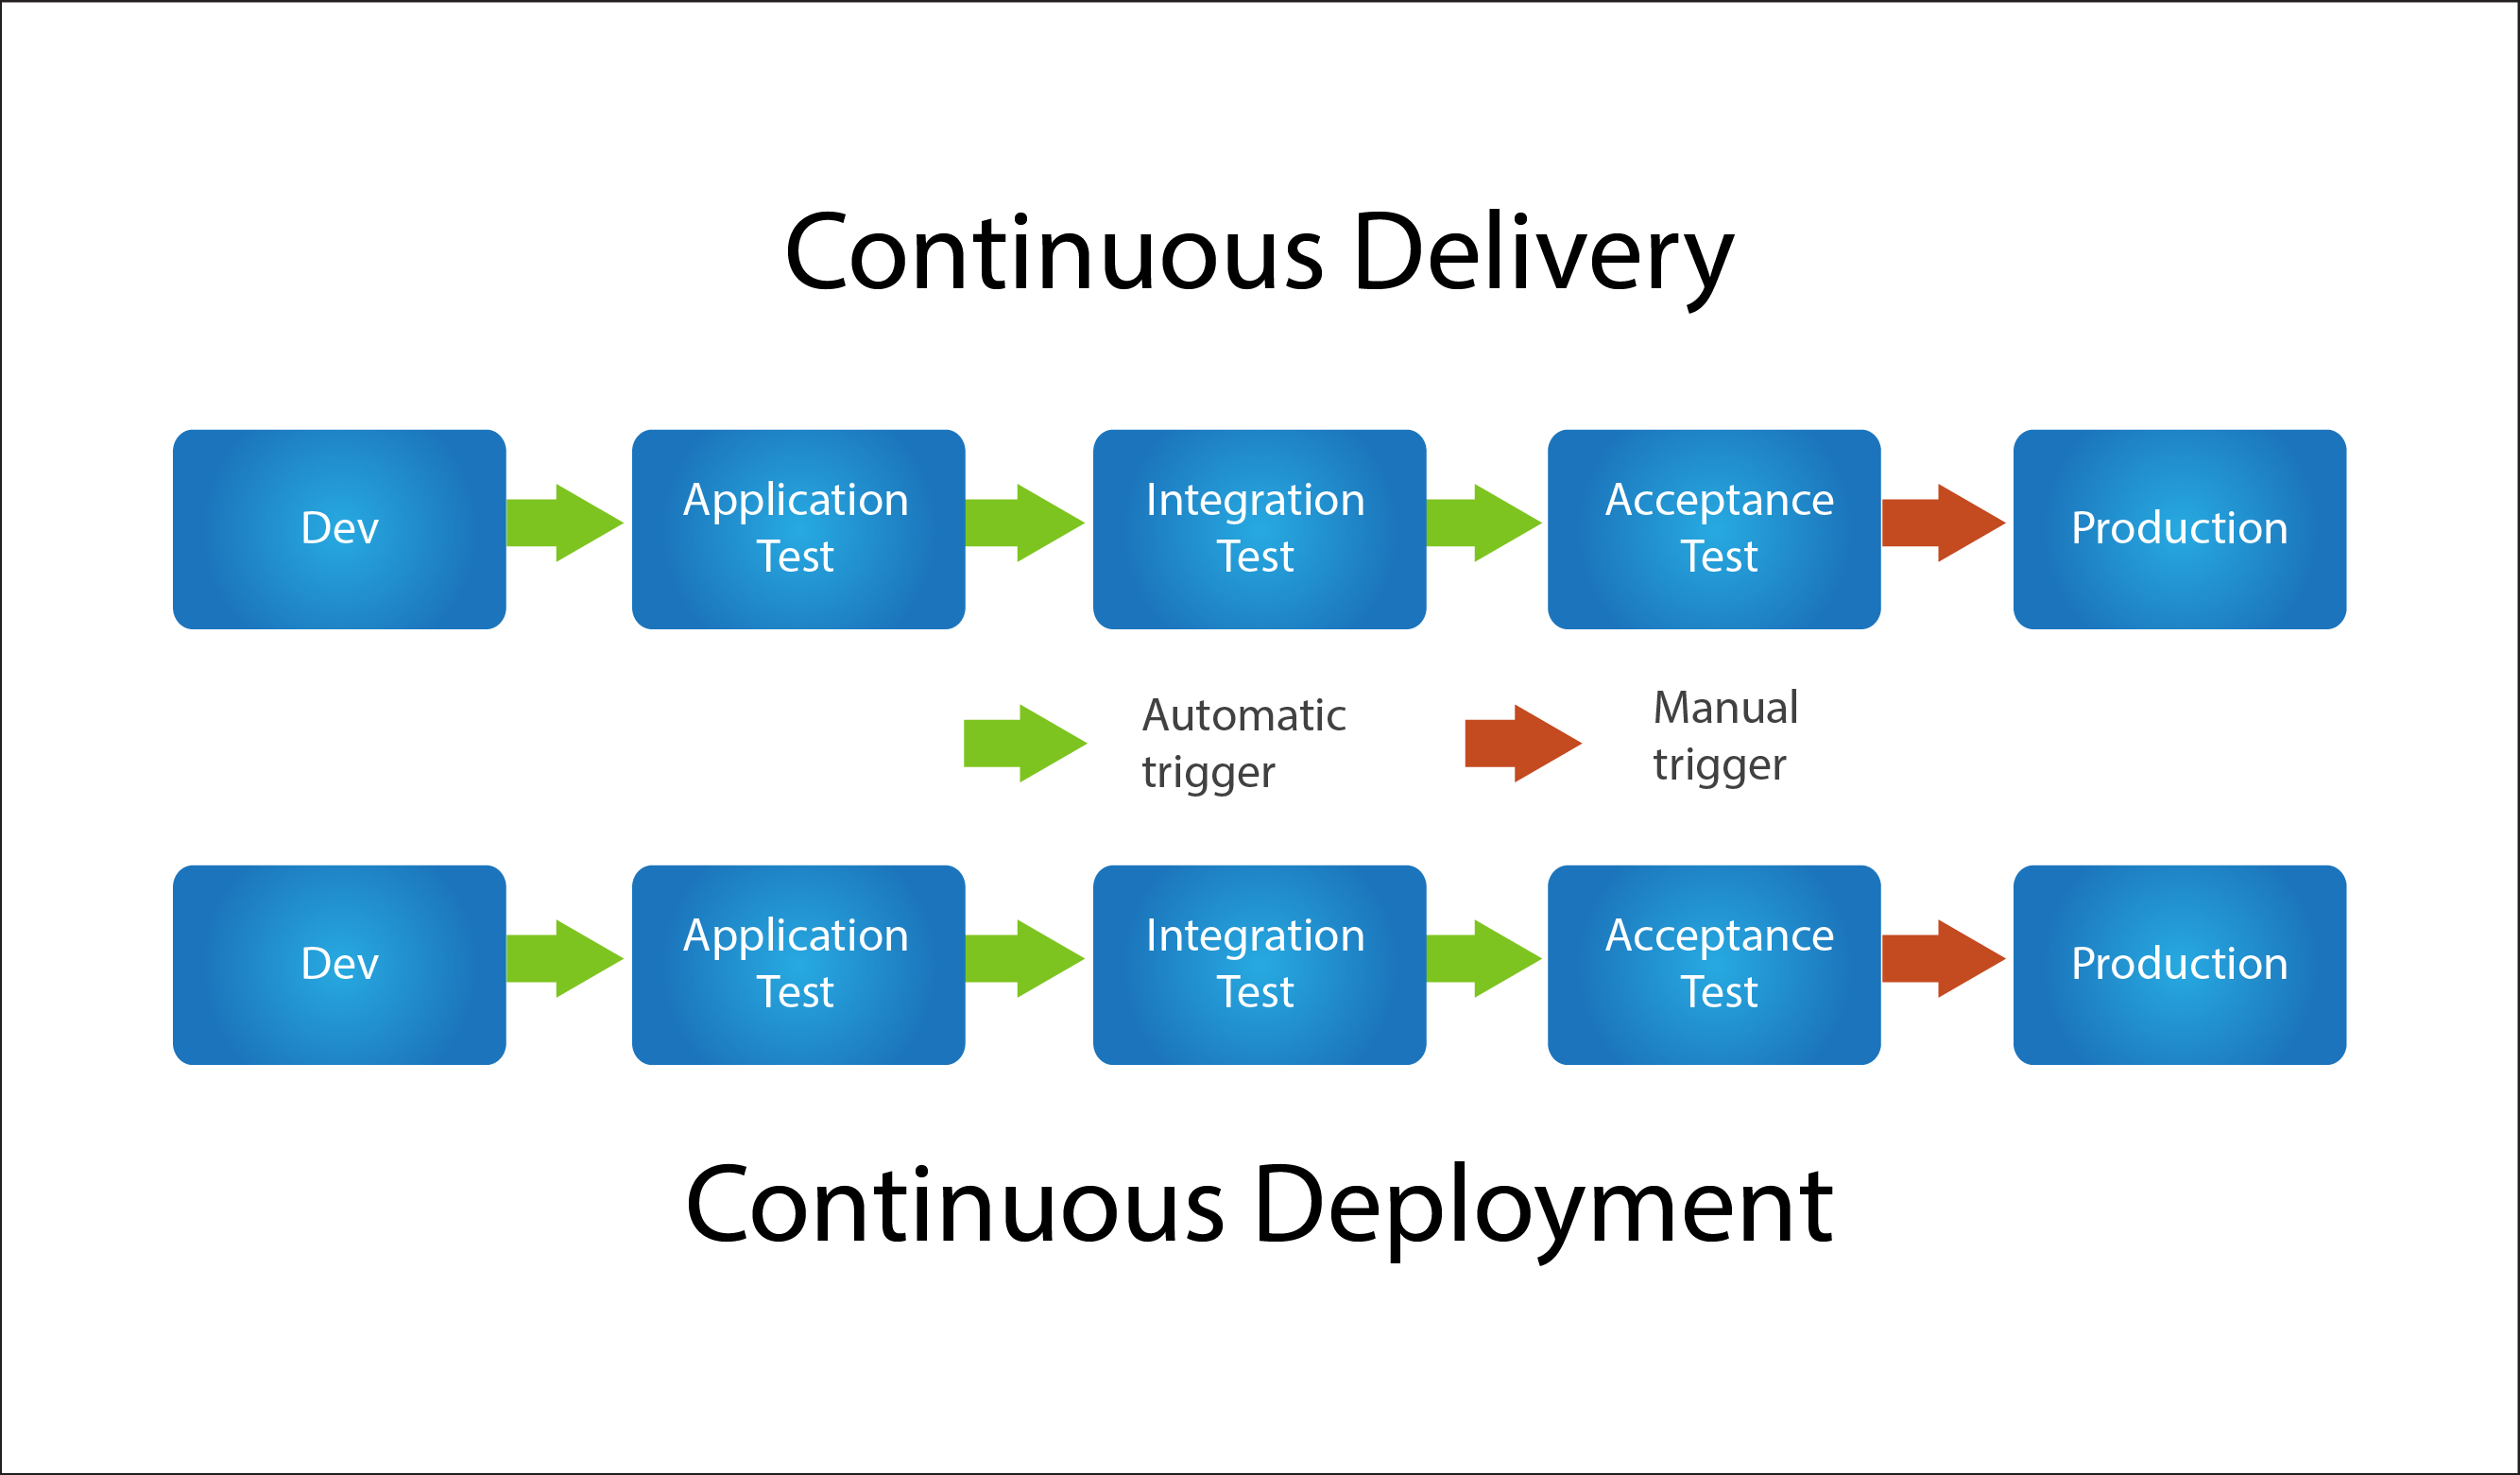 Continuous Delivery and Continuous Deployment